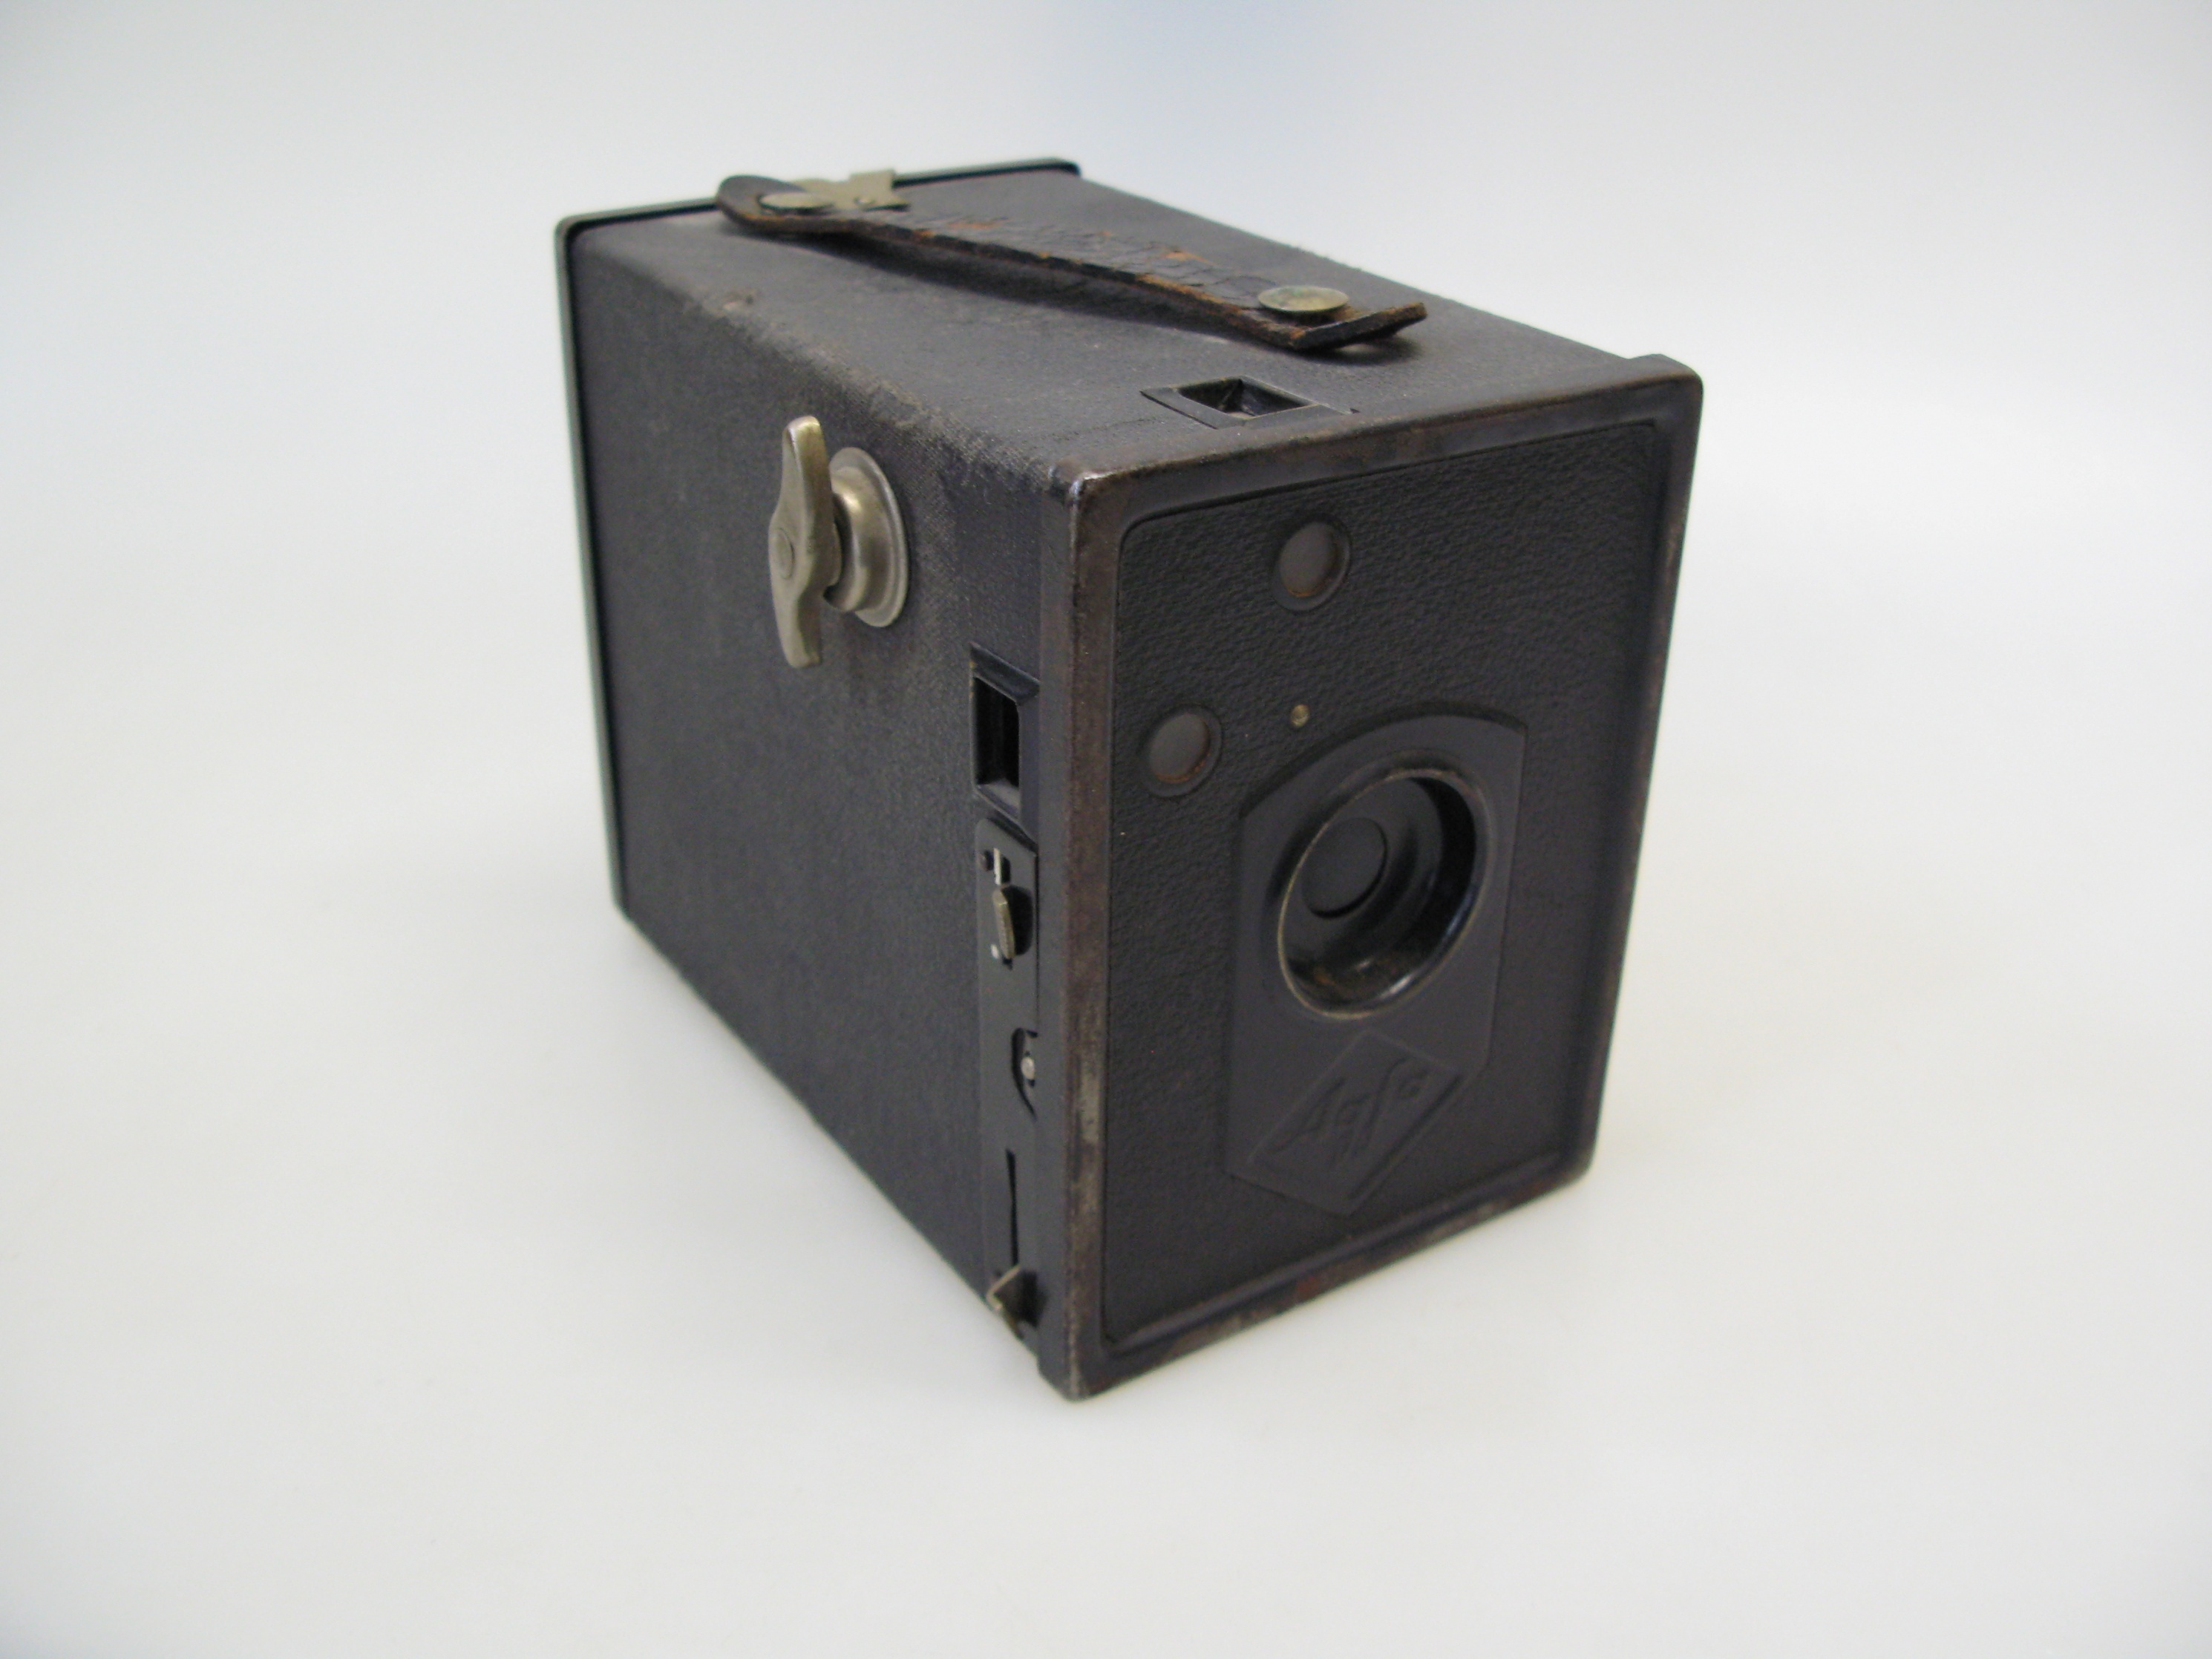 AGFA-Box 44 (Museum der Stadt Lennestadt CC BY-NC-SA)